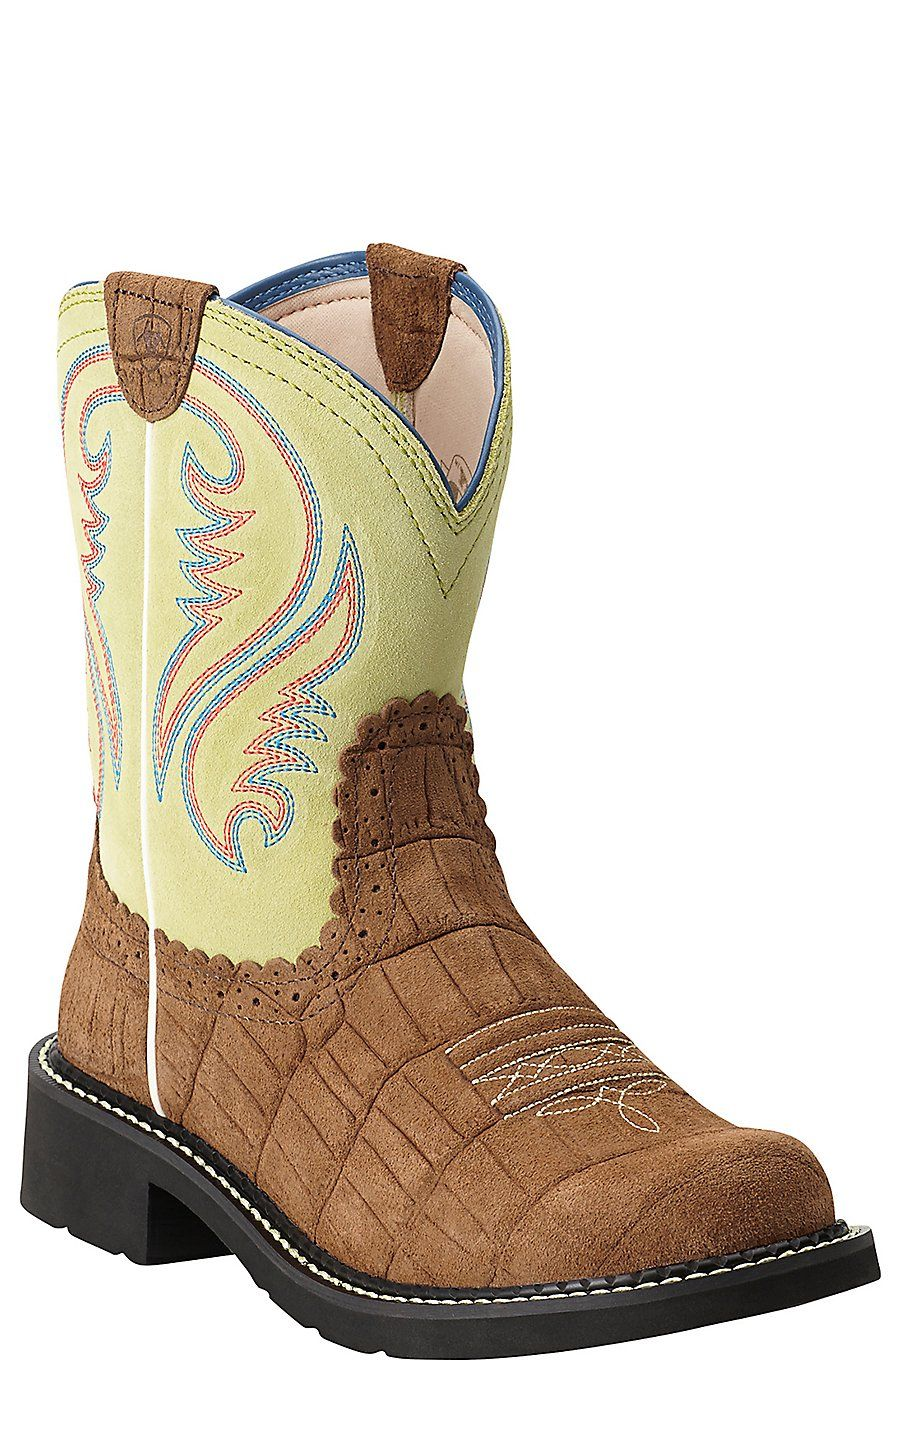 Ariat Womens Brown Boots Fatbaby Heritage Dist Gator Lime